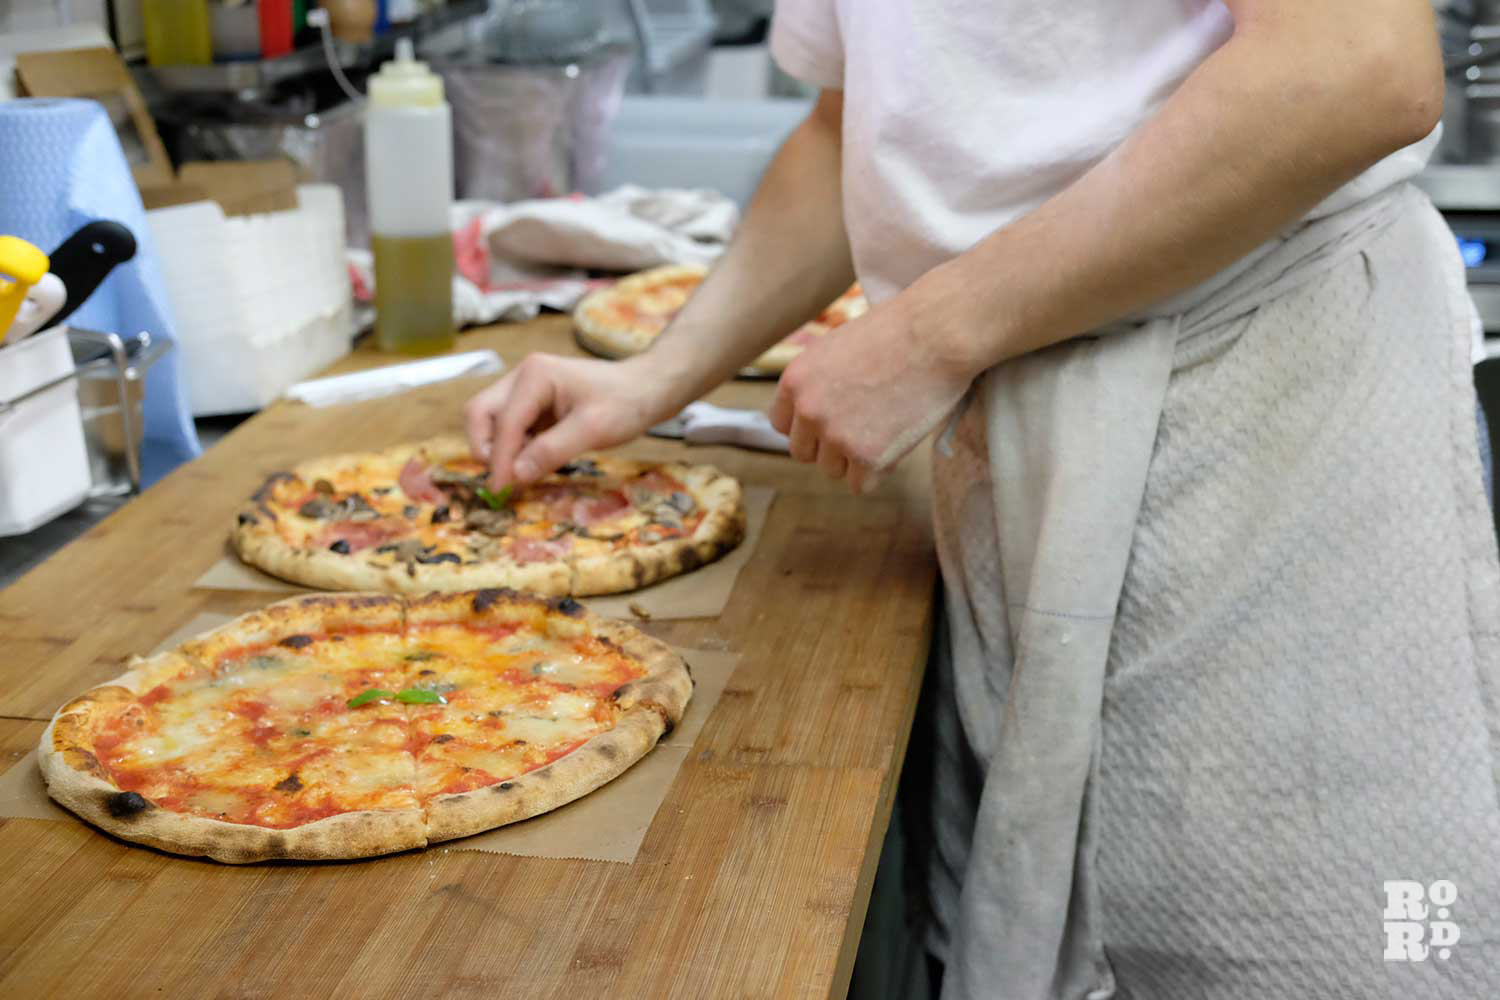 Pizza being prepared in a kitchen in Pizza Room in Mile End